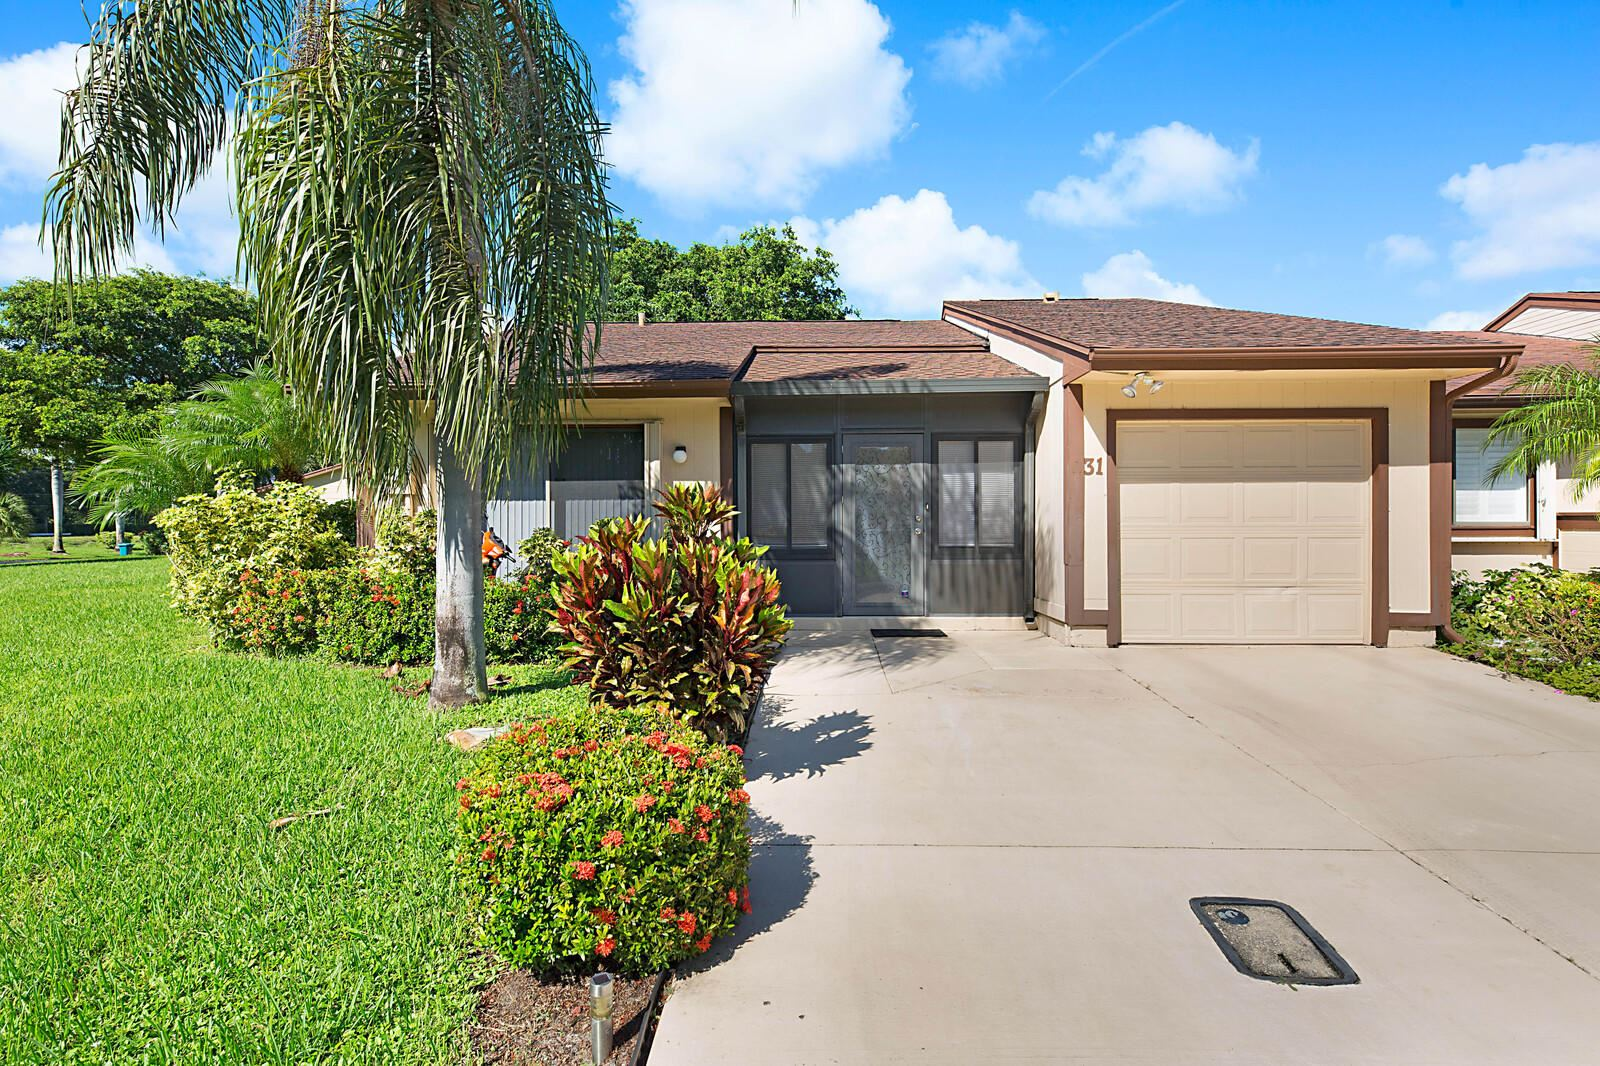 31 Mayfair Lane, Boynton Beach, FL 33426 - #: RX-10662956